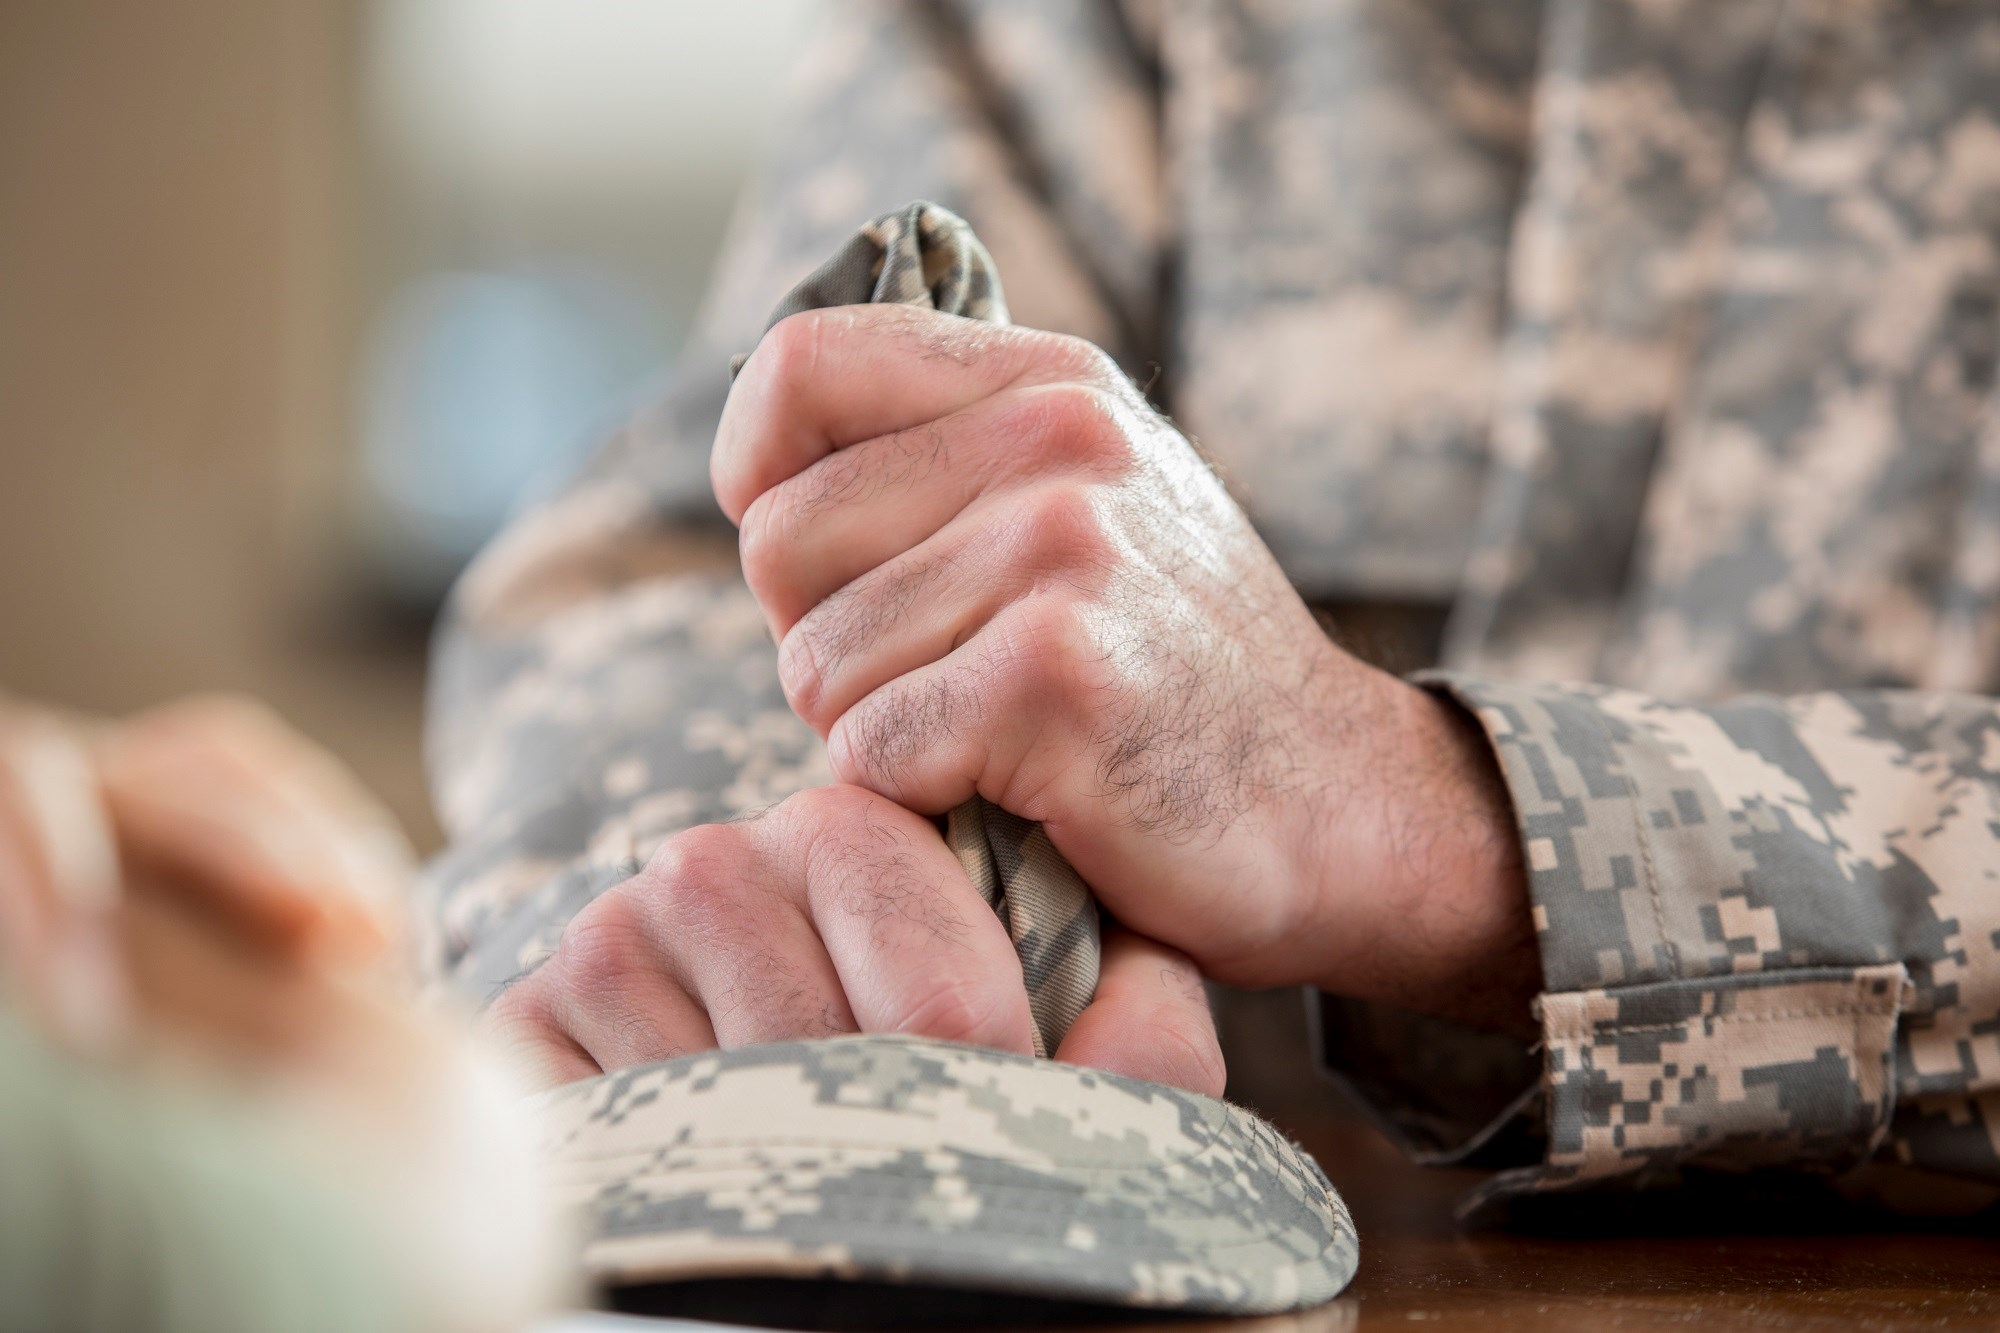 Remission of Treatment-Resistant Depression in Veterans Depends on Close Clinical Observation